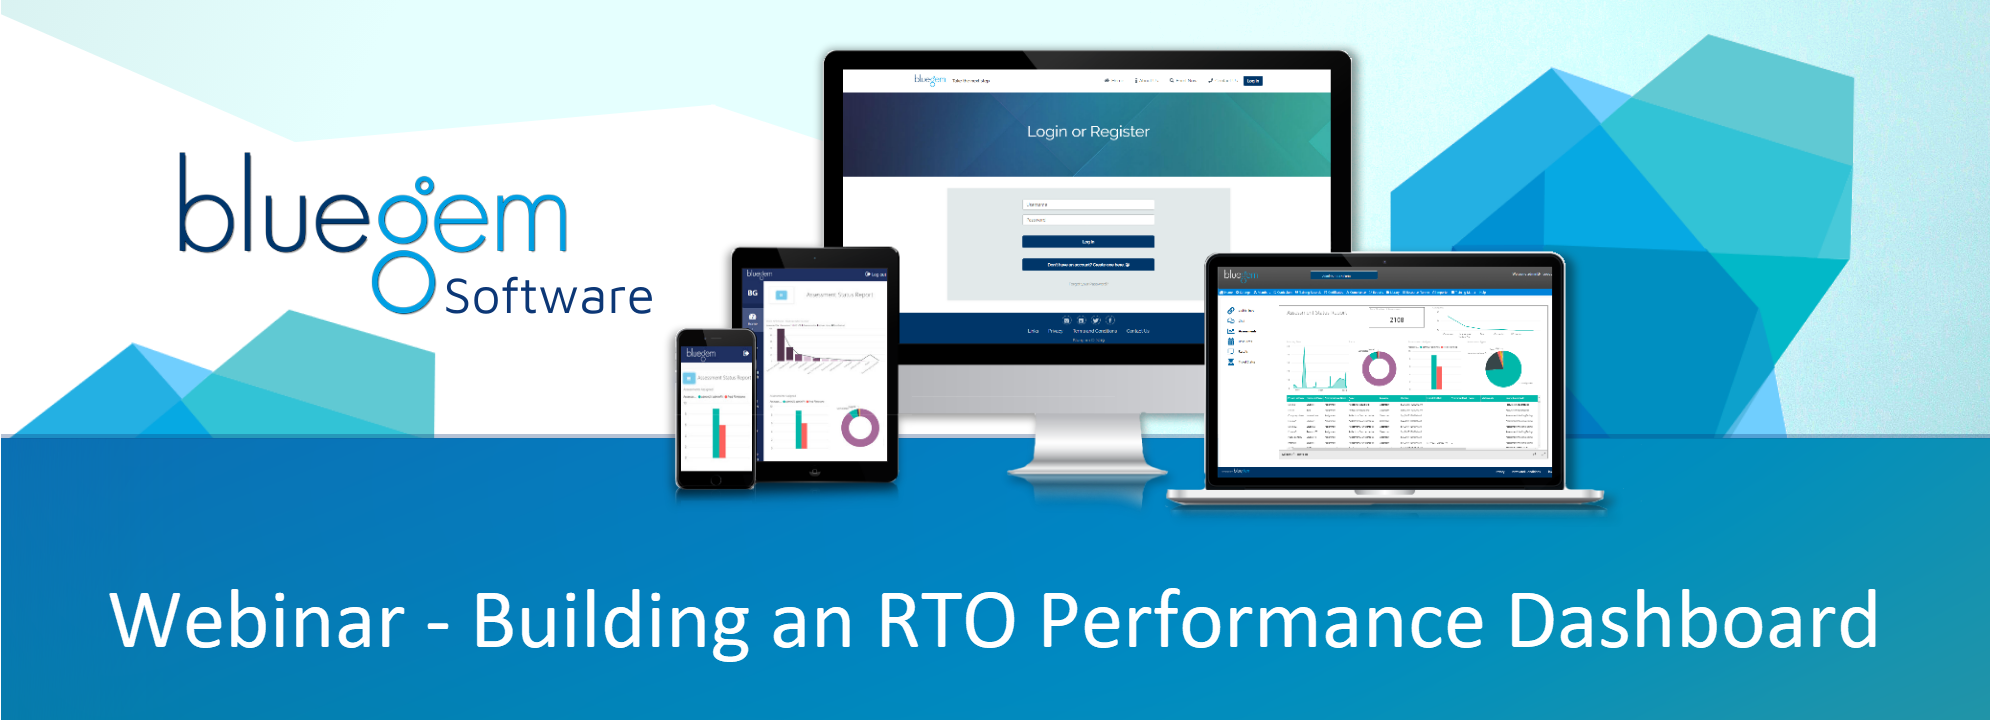 Building an RTO Performance Dashboard